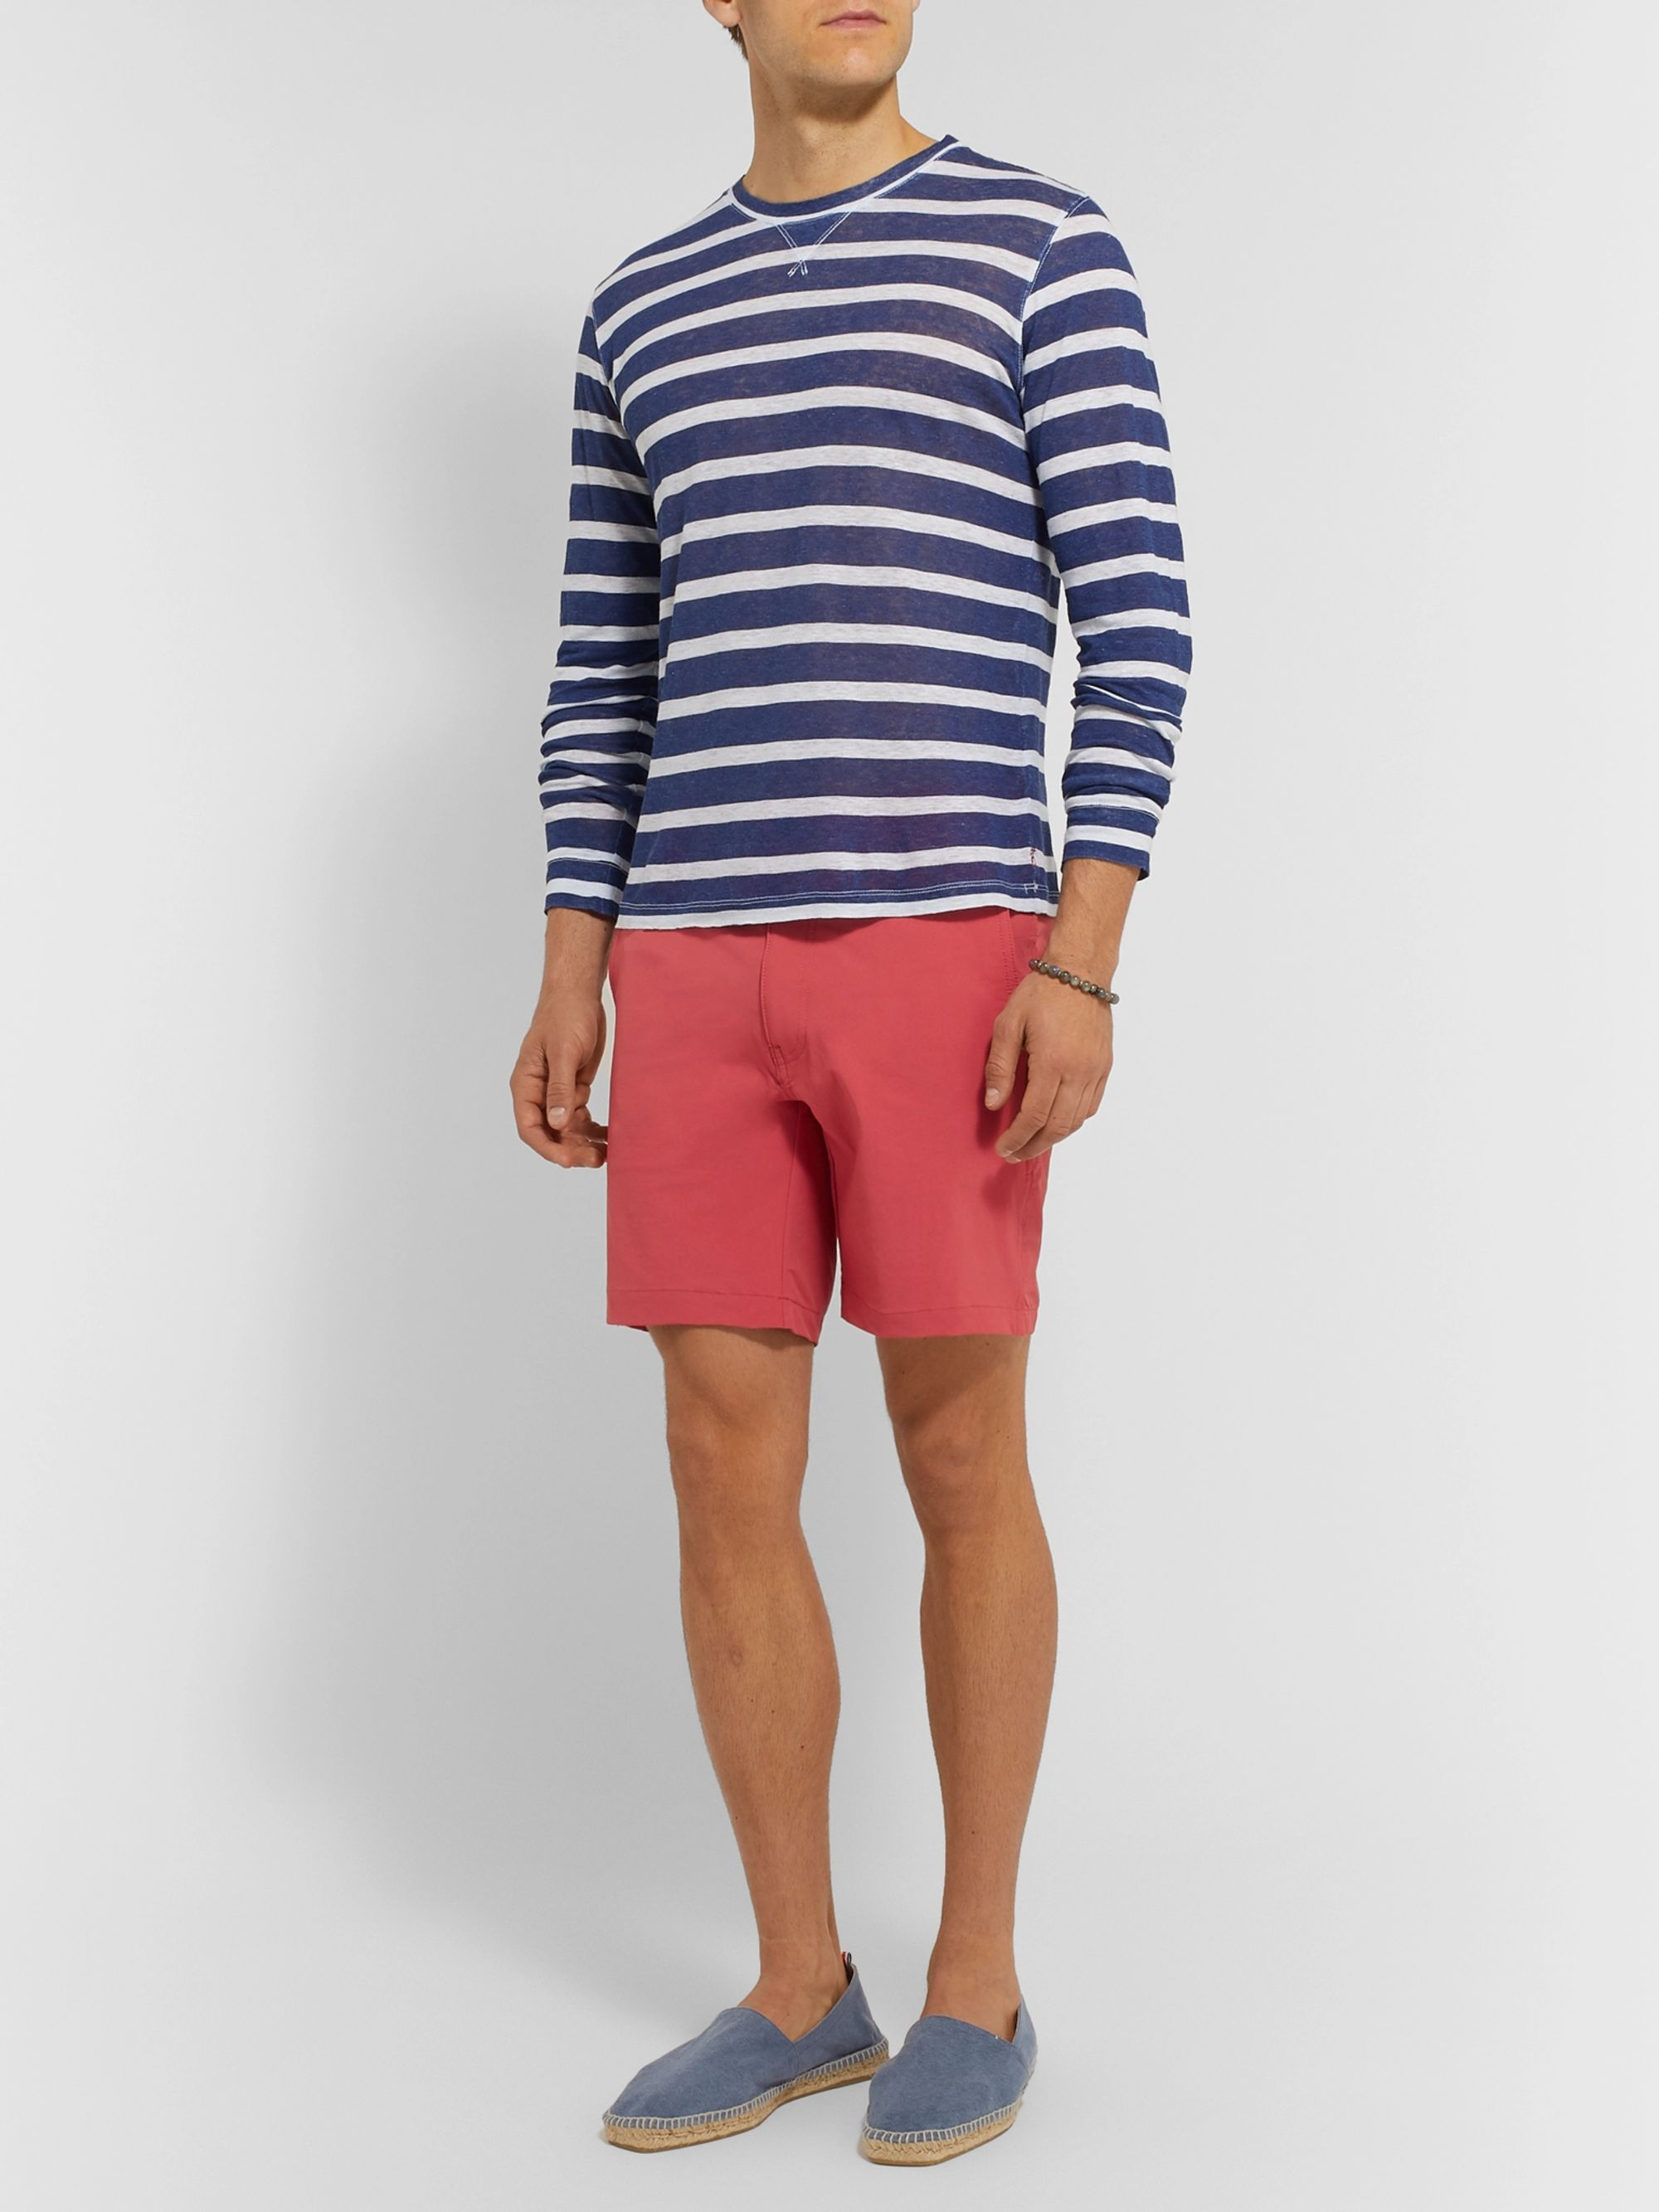 Onia Calder Mid-Length Swim Shorts